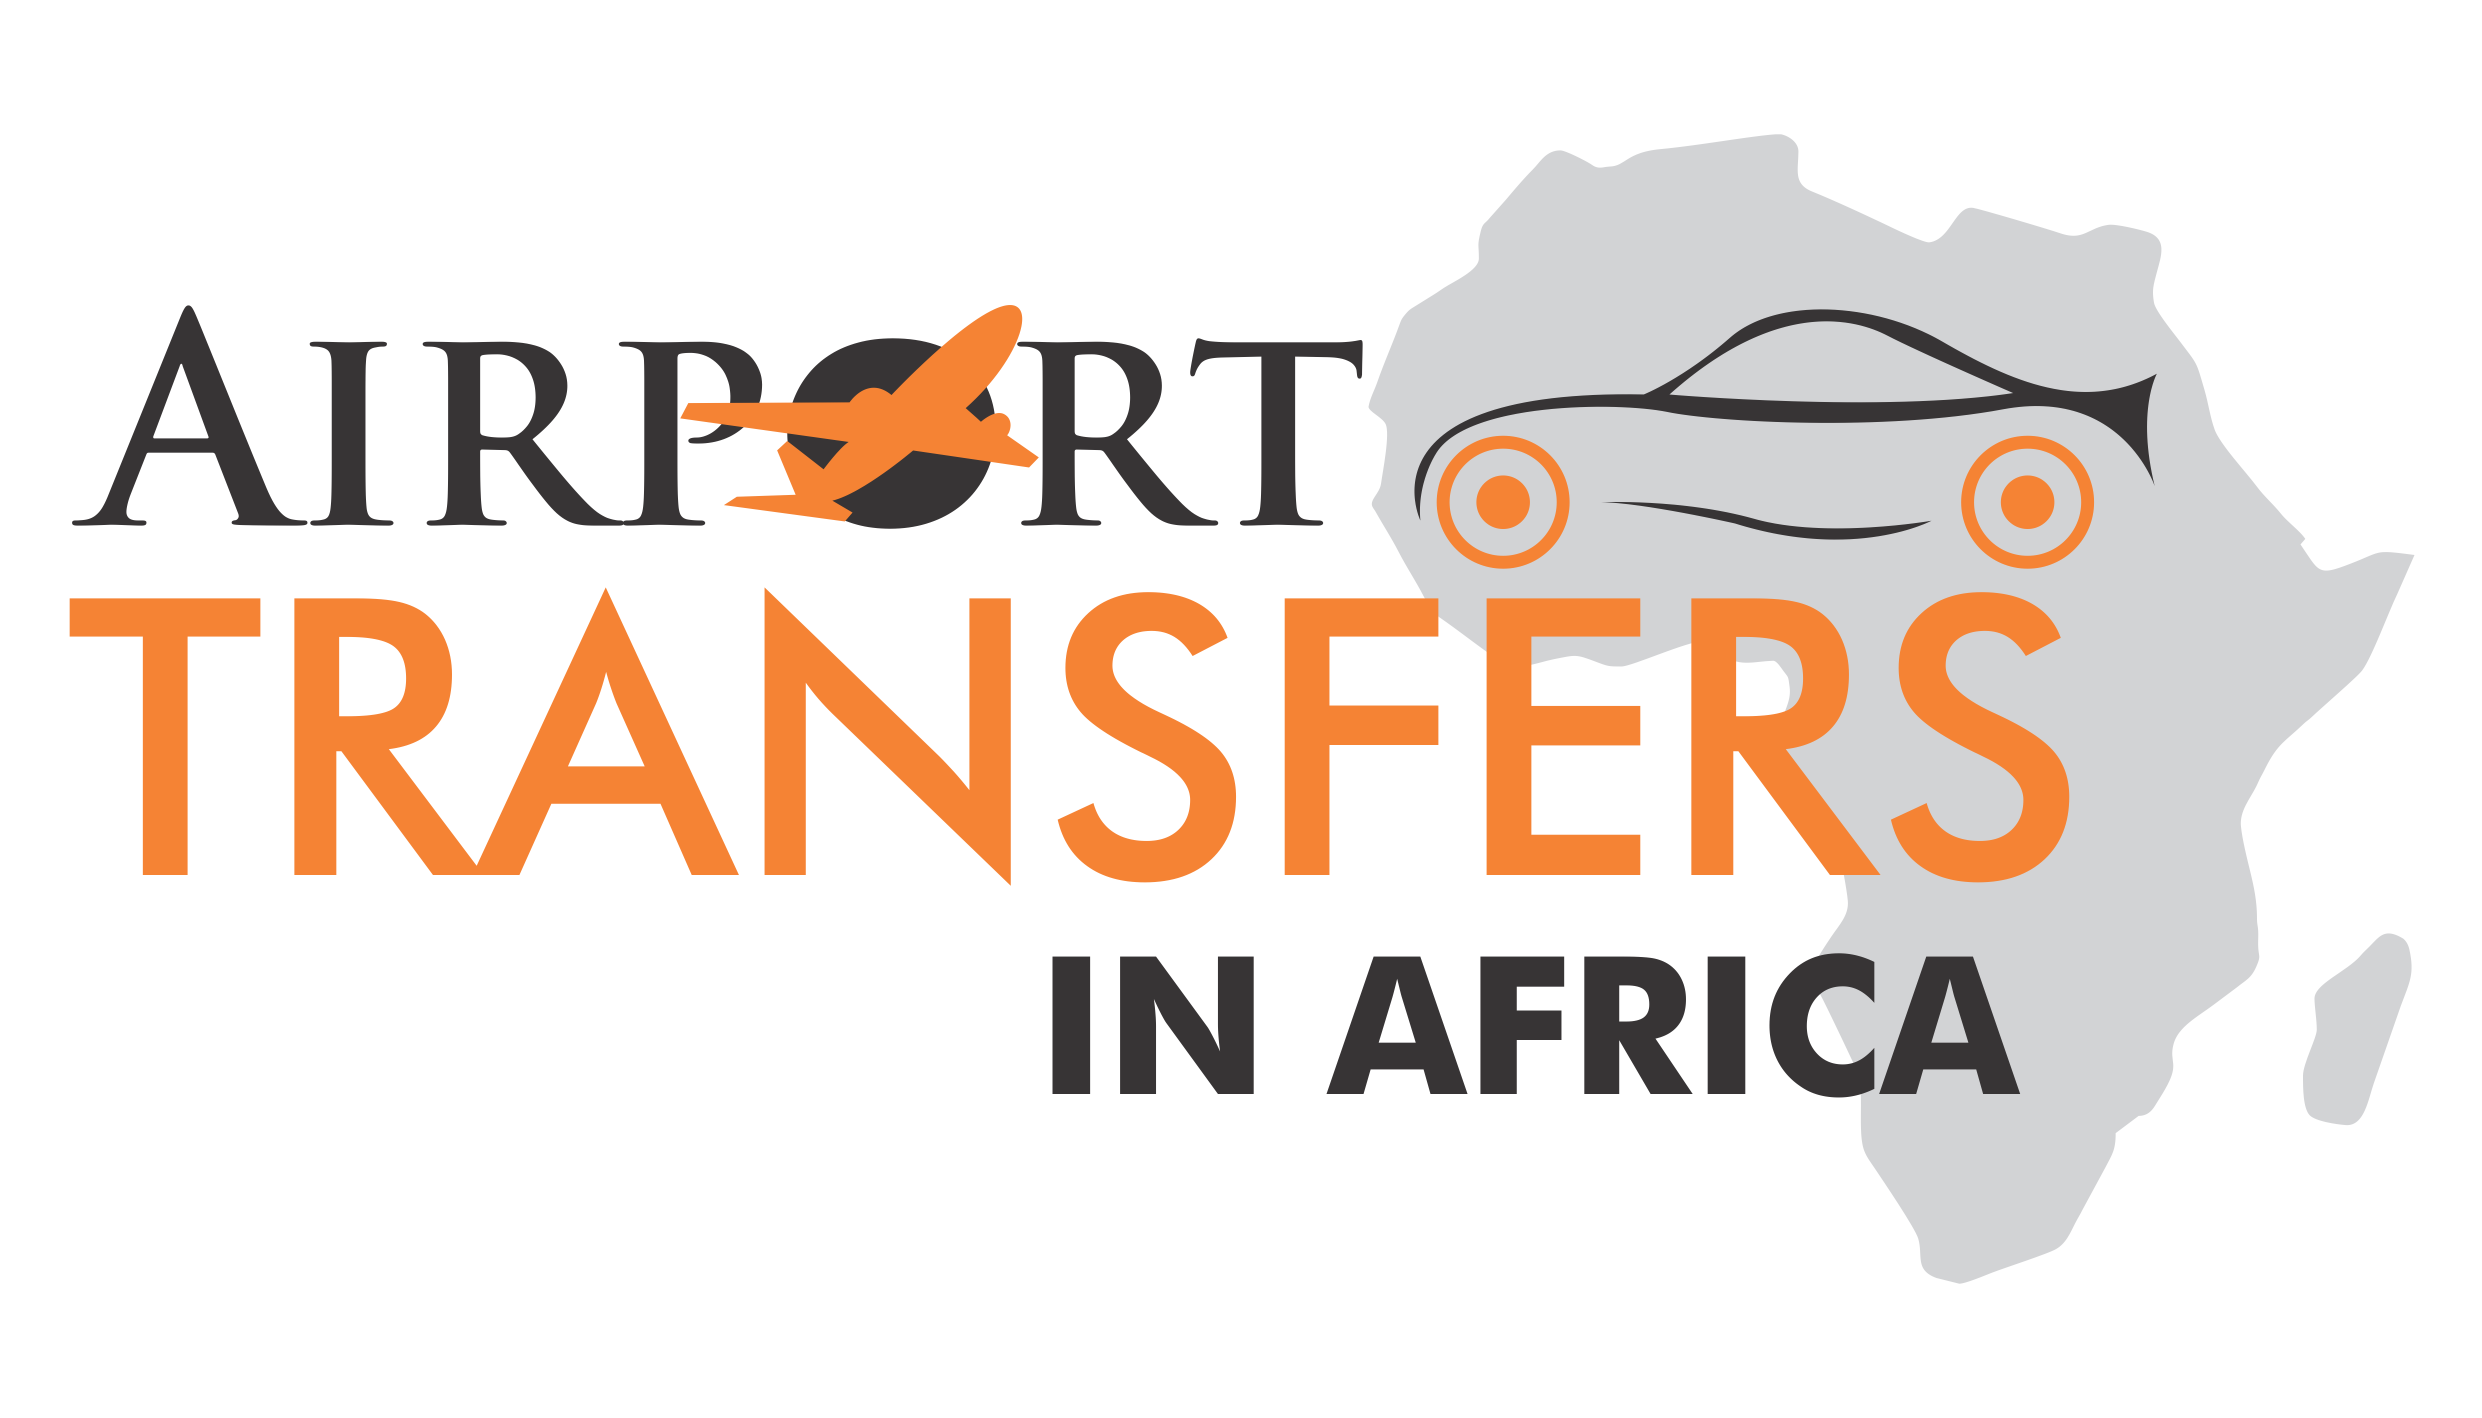 Airport Transfers in Africa